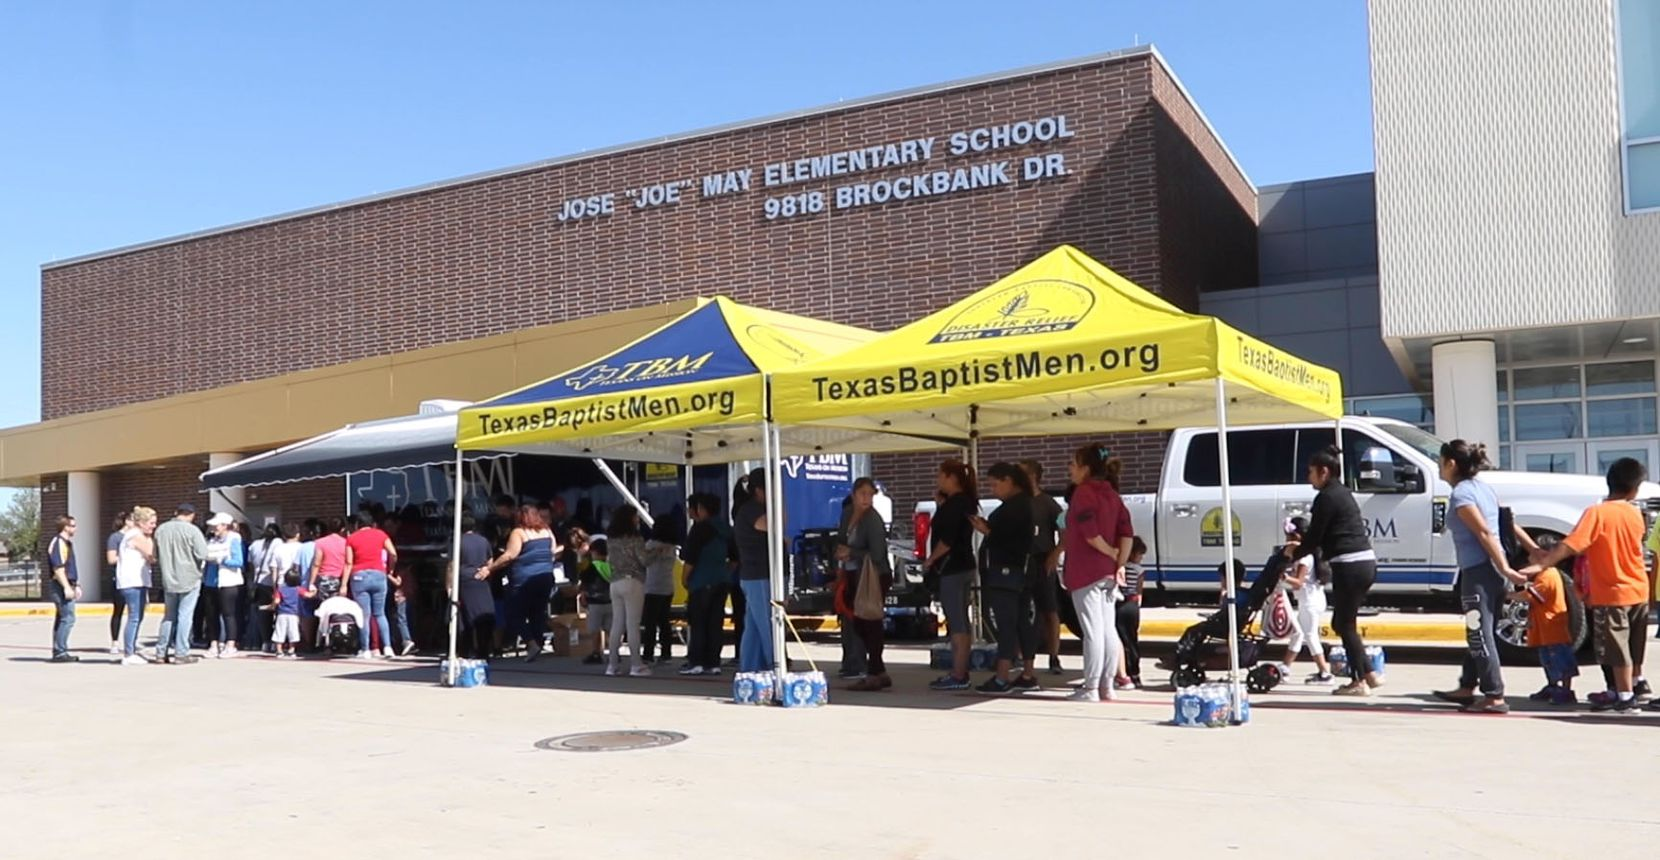 About 250 people showed up Tuesday afternoon at Joe May Elementary for a hot meal. Power outages in the area have been limiting families to fast food options.